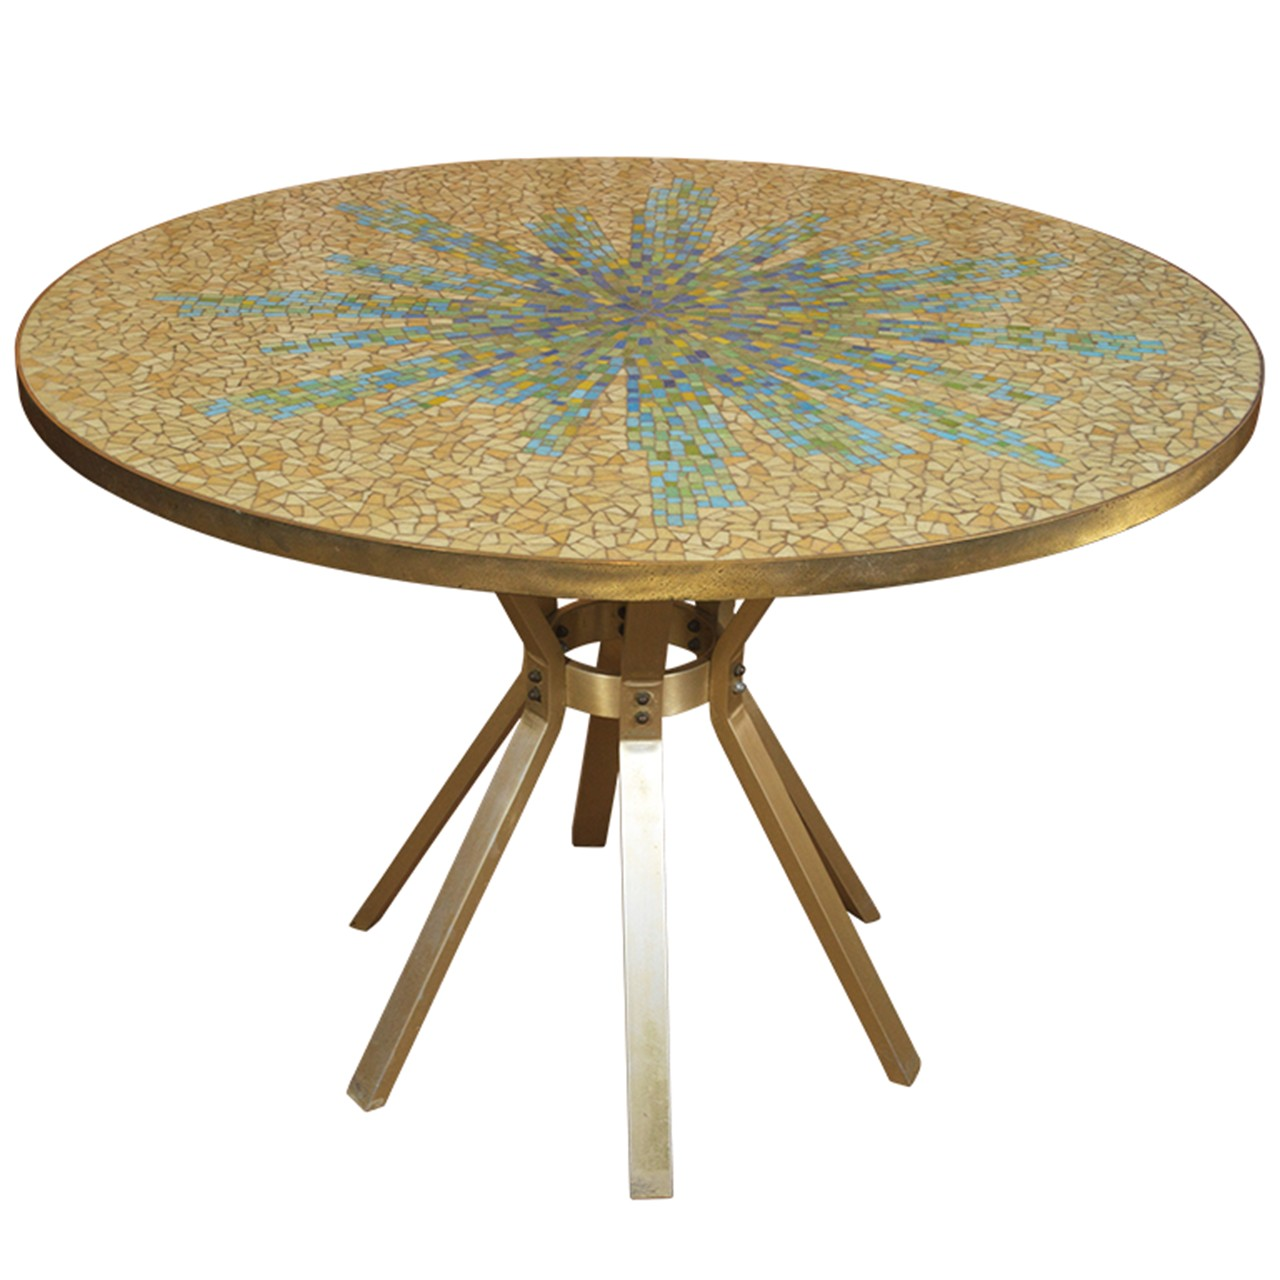 Merveilleux Mosaic Dining Room Table